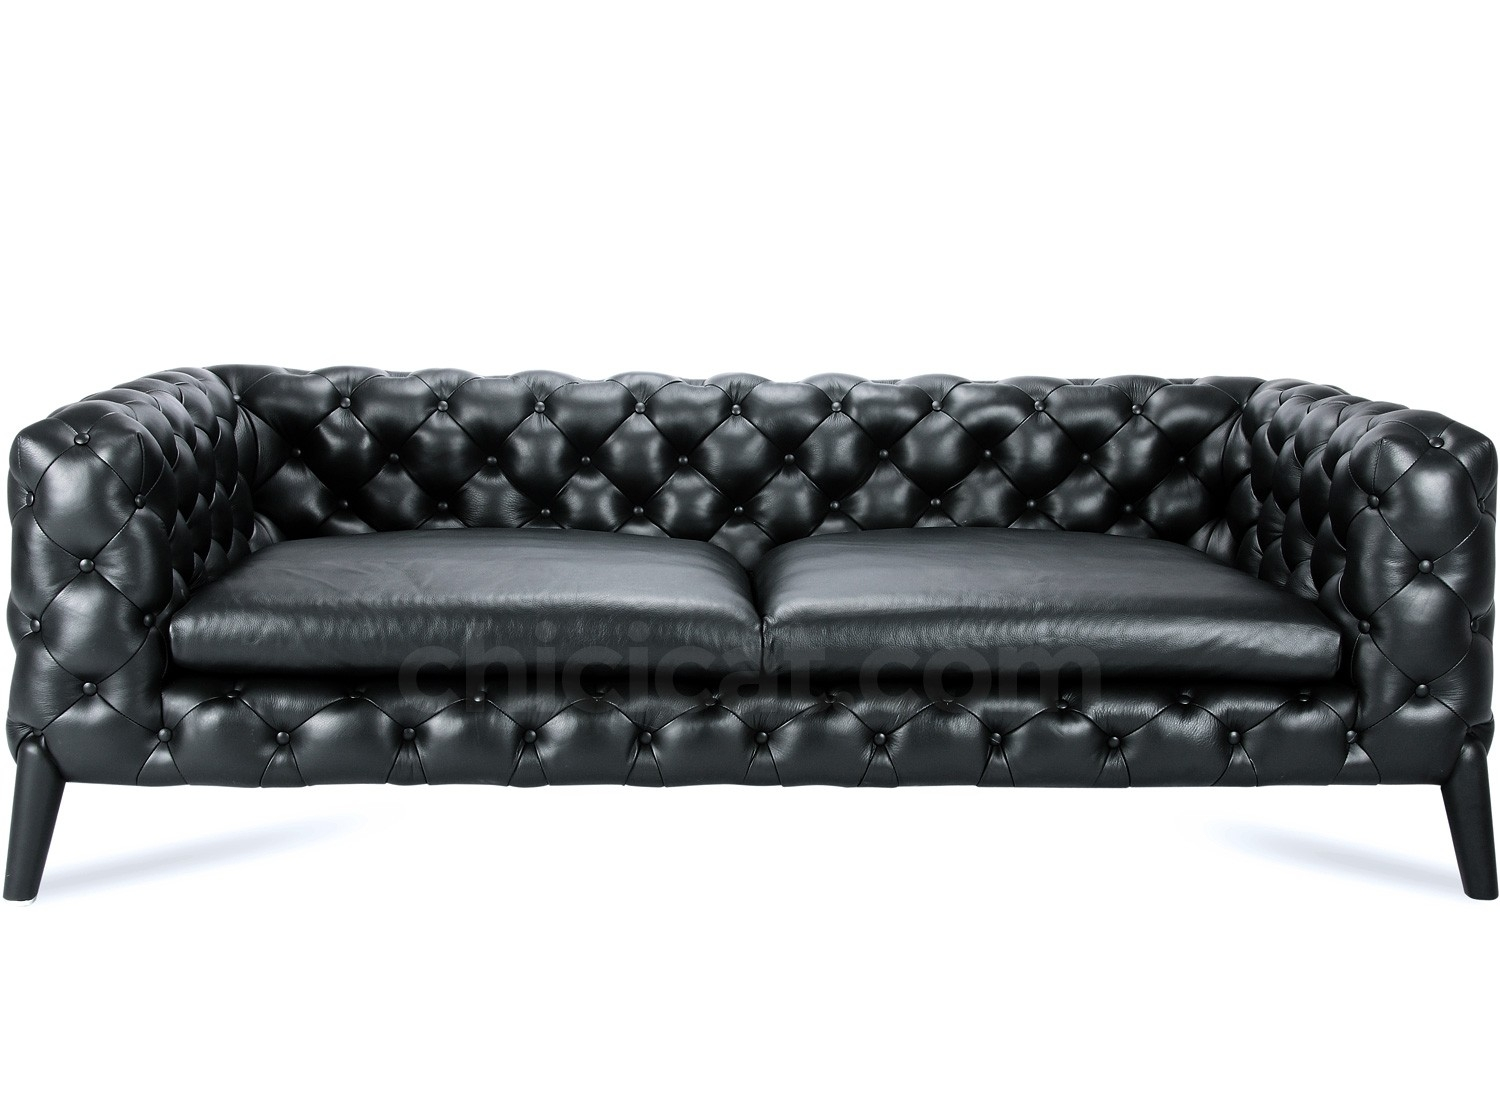 Windsor Chesterfield Sofa Replica Throughout Windsor Sofas (Image 9 of 15)